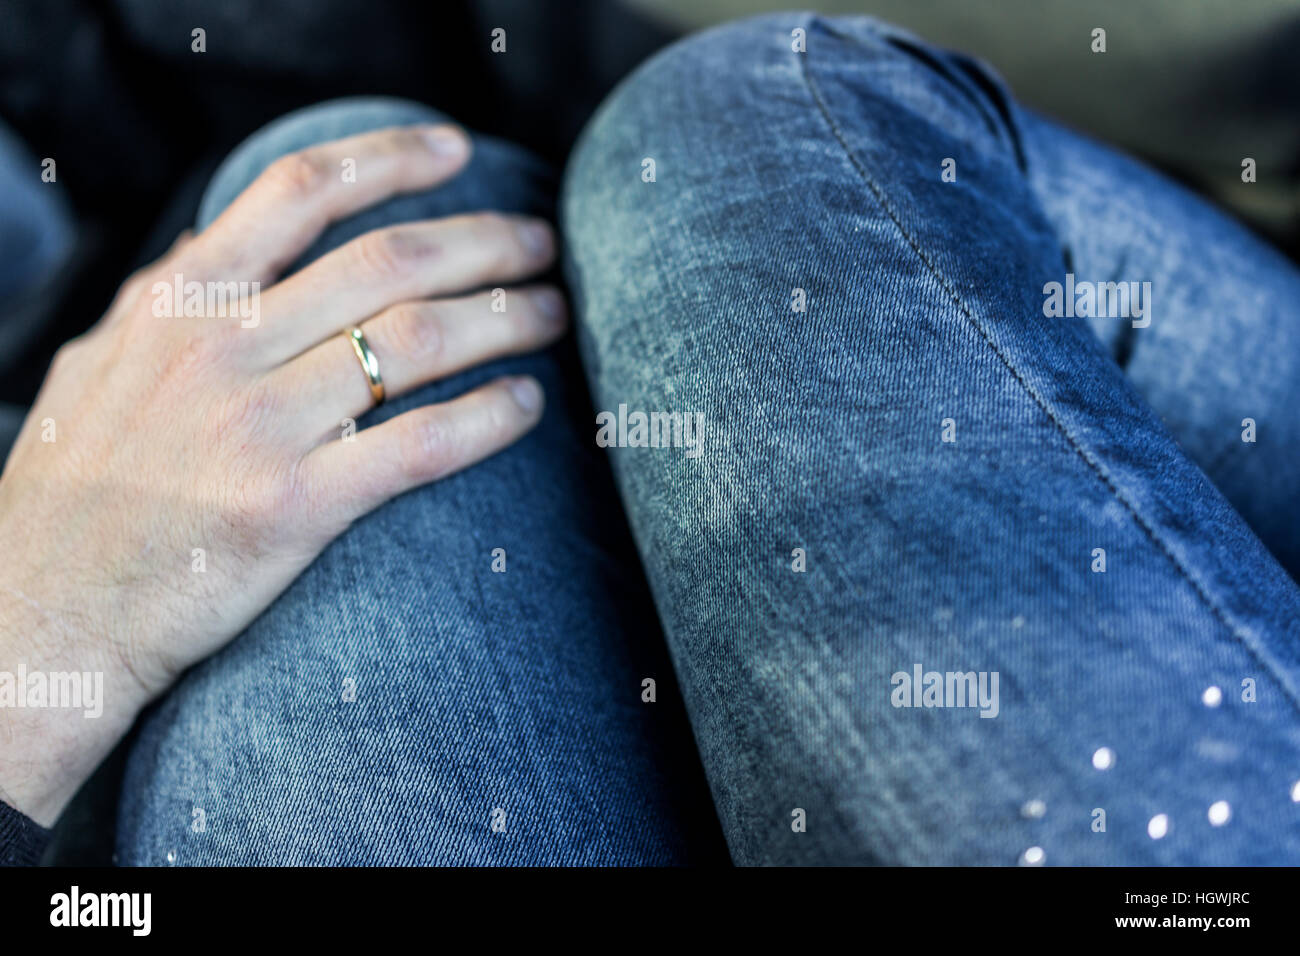 Man's hand with wedding ring on woman's legs in jeans in car - Stock Image